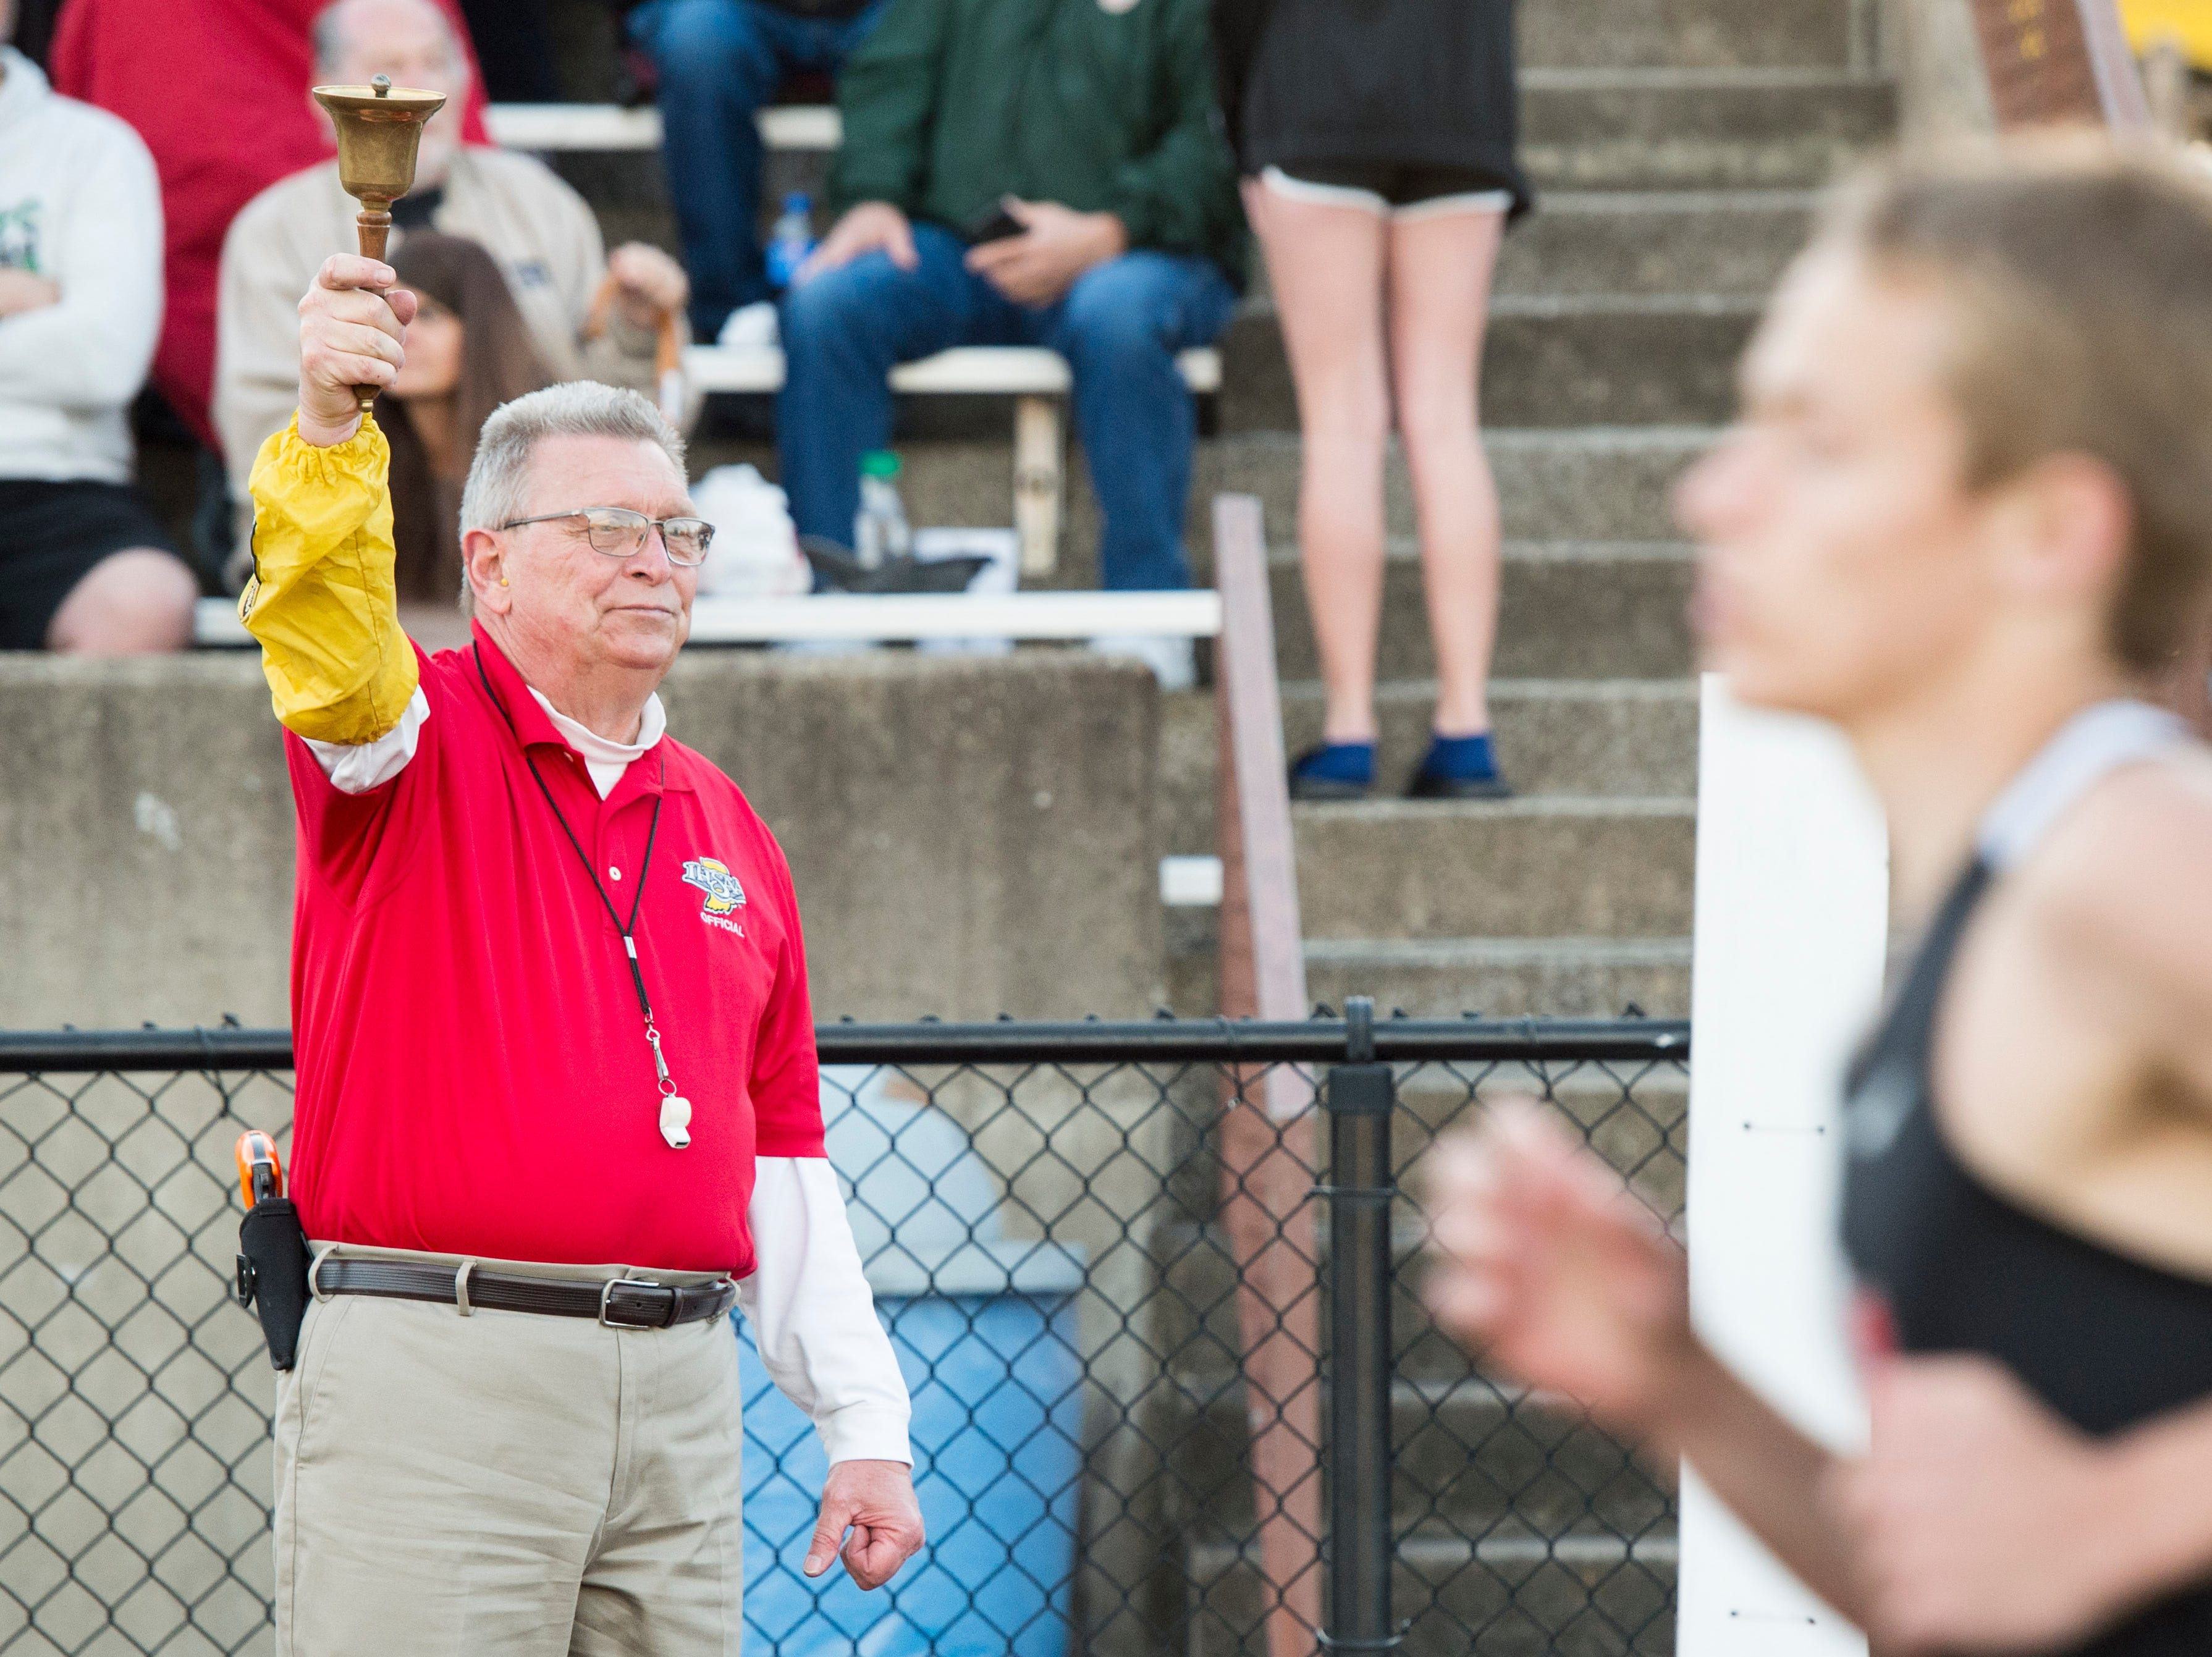 Official Ron Schell rings the bell for the boys 800m run during 2019 City Track and Field meet at Central High School Friday, April 12, 2019.